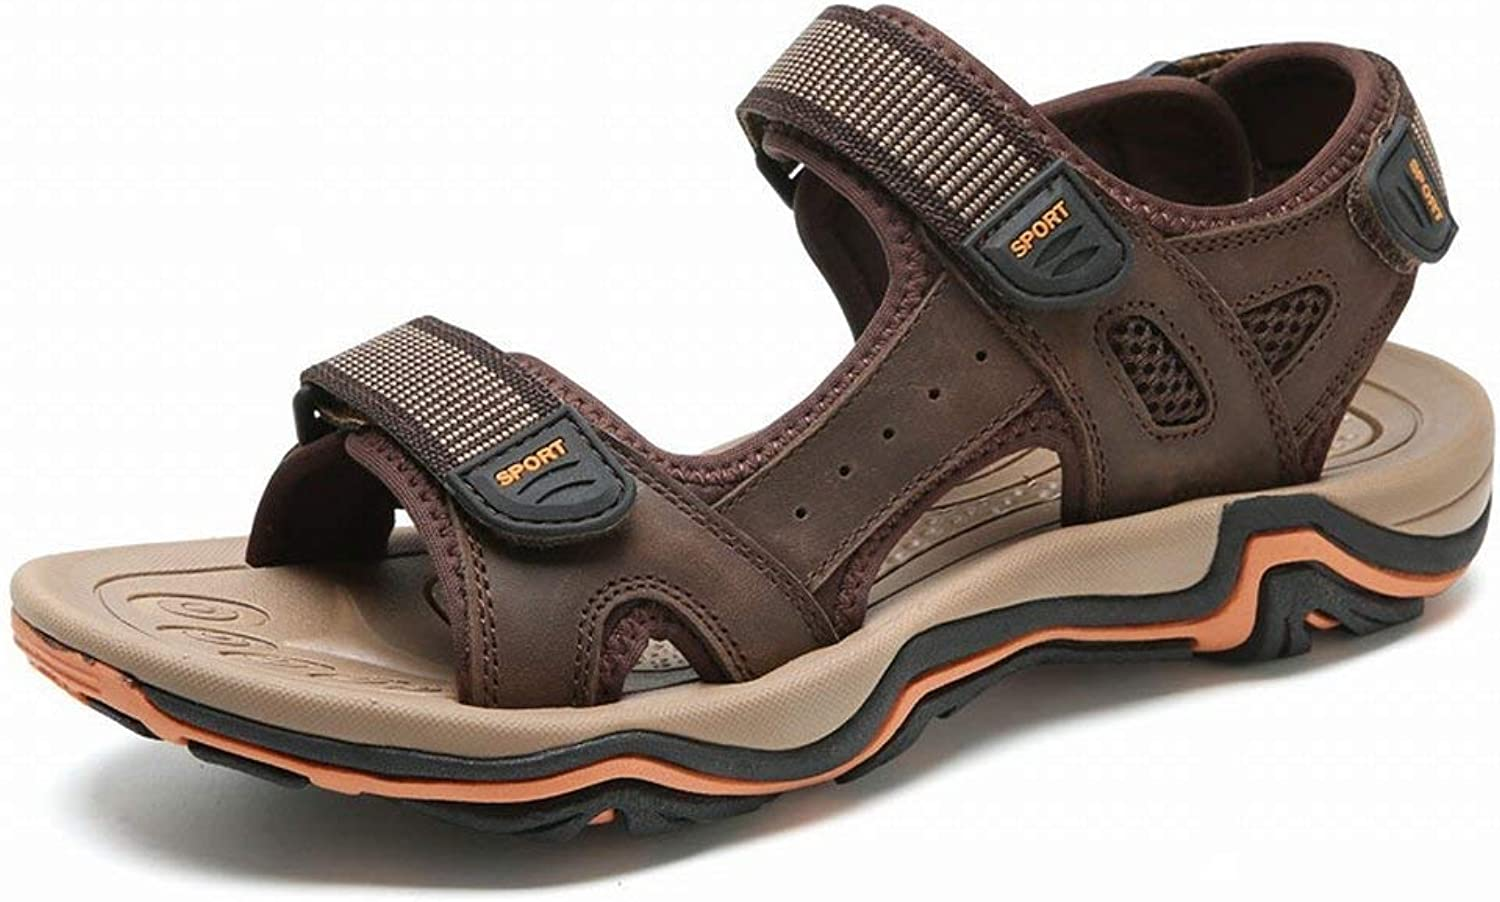 Fuxitoggo Fashion Casual Beach shoes First Layer Leather Sandals Lightweight Velcro Men Sandals (color   Dunkelbrown, Size   41)